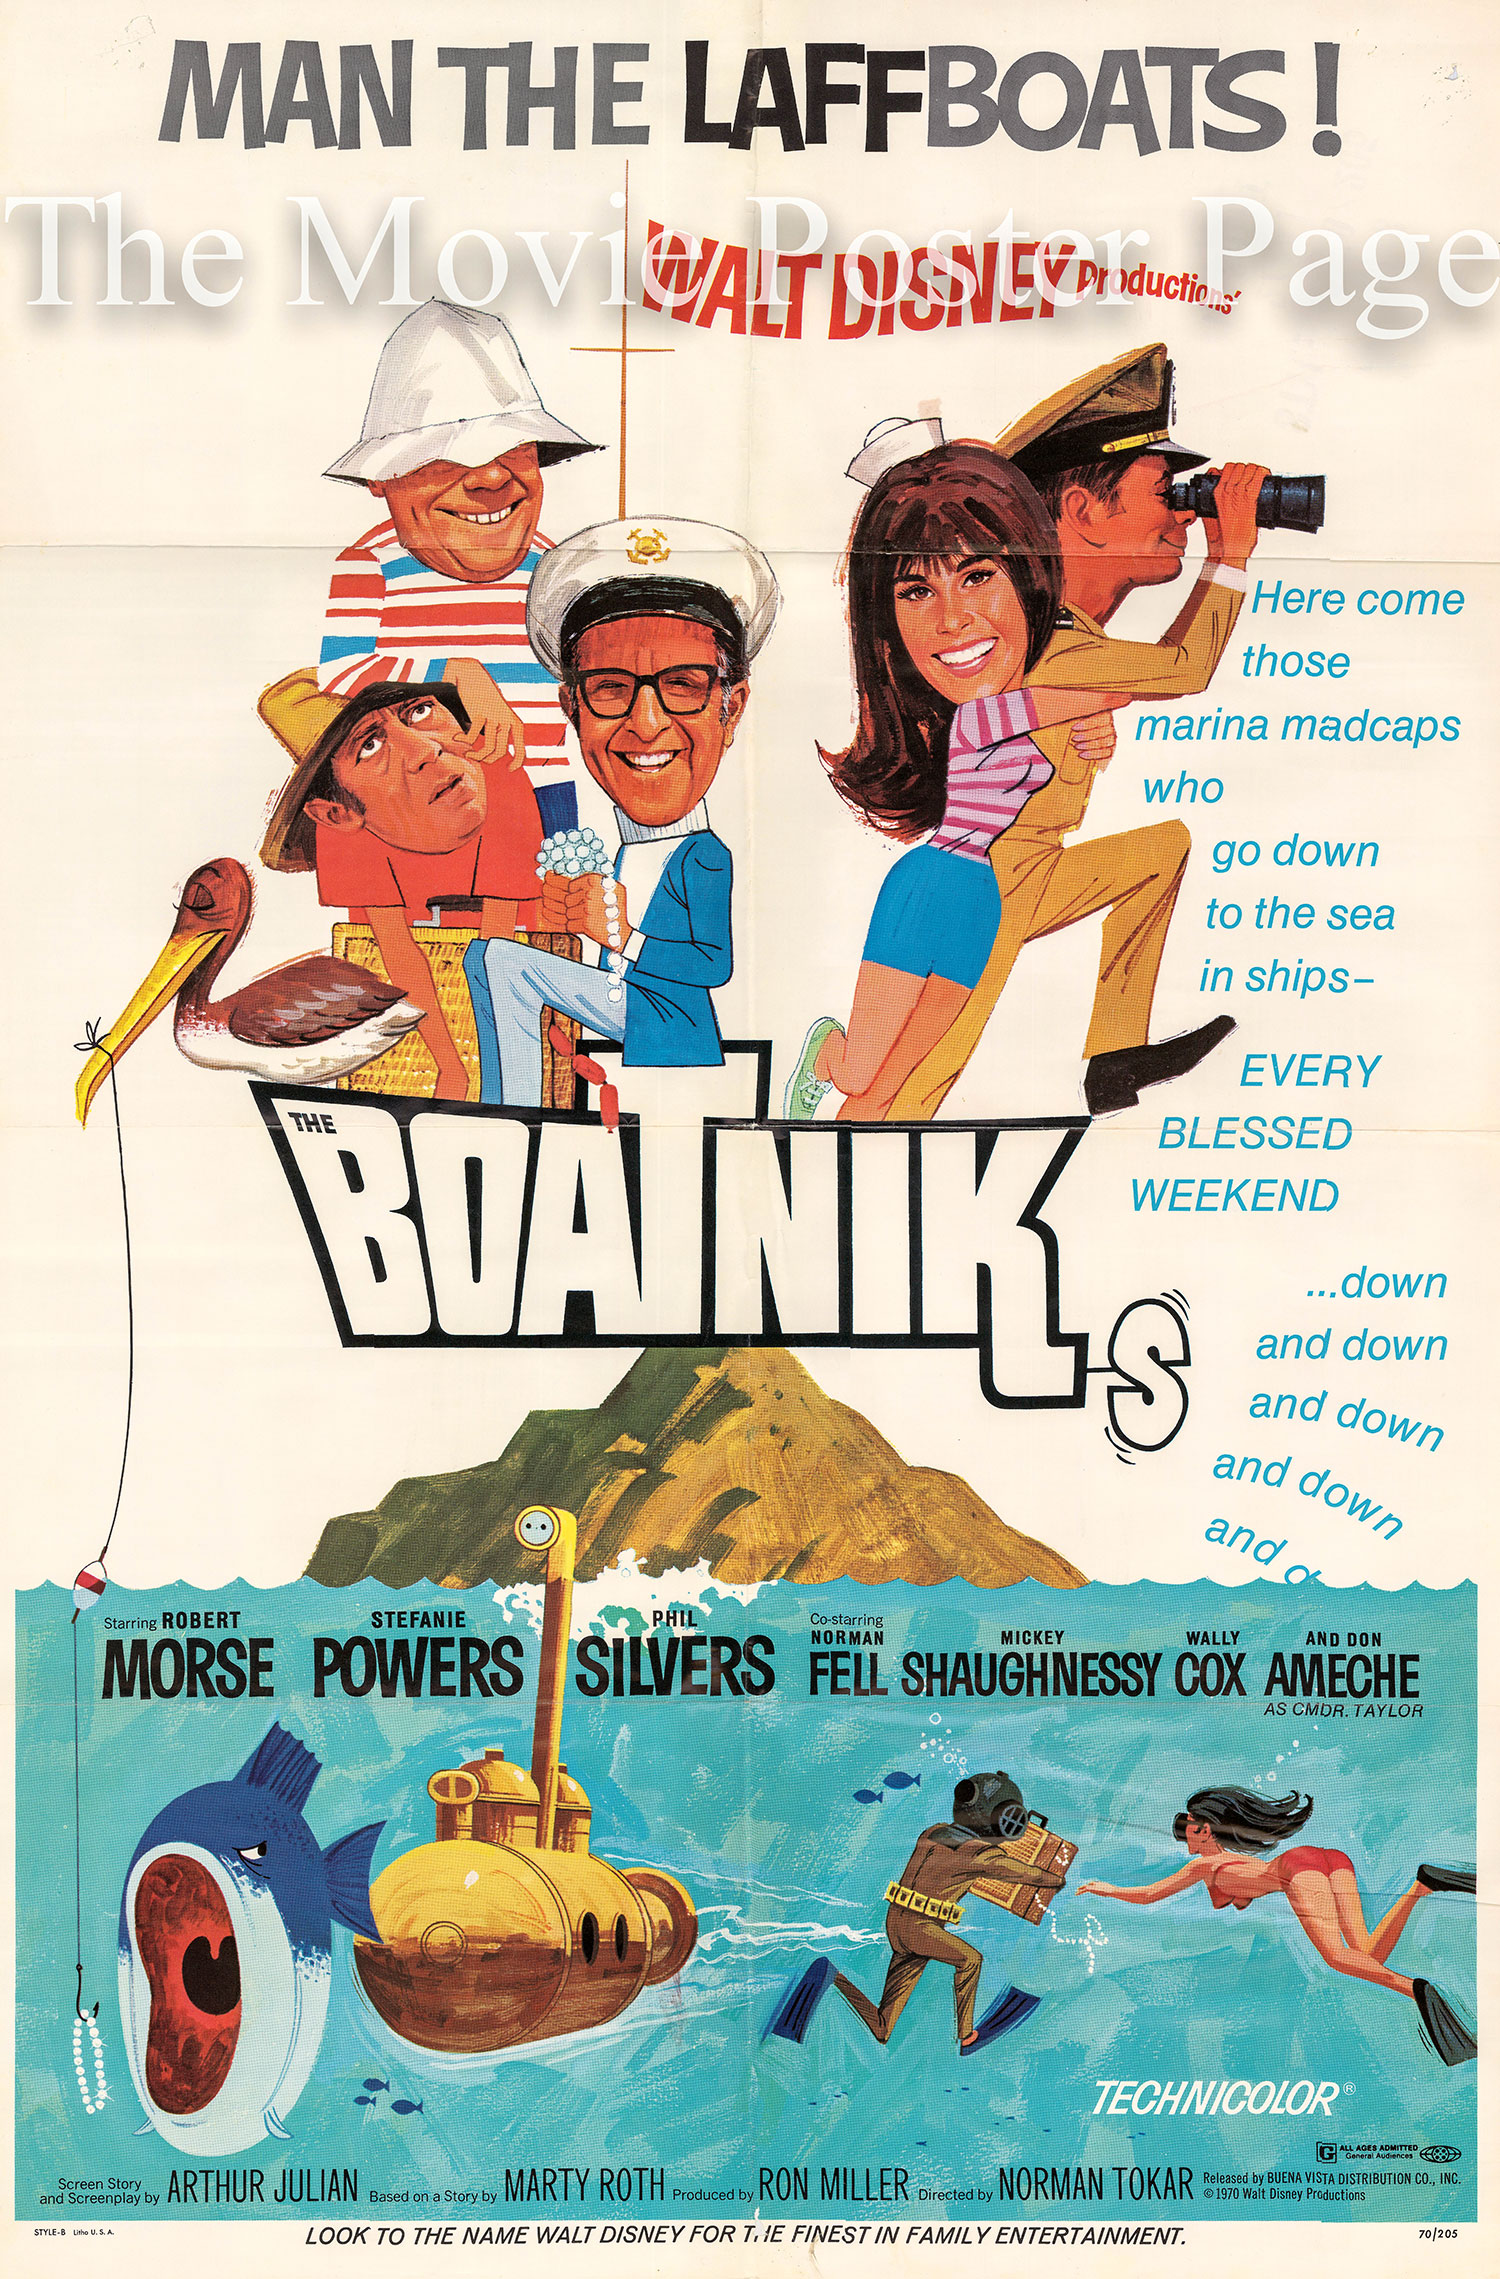 Pictured is a US one-sheet promotional poster for the 1970 Norman Tokar film Boatniks starring Robert Morse as Ensign Garland.